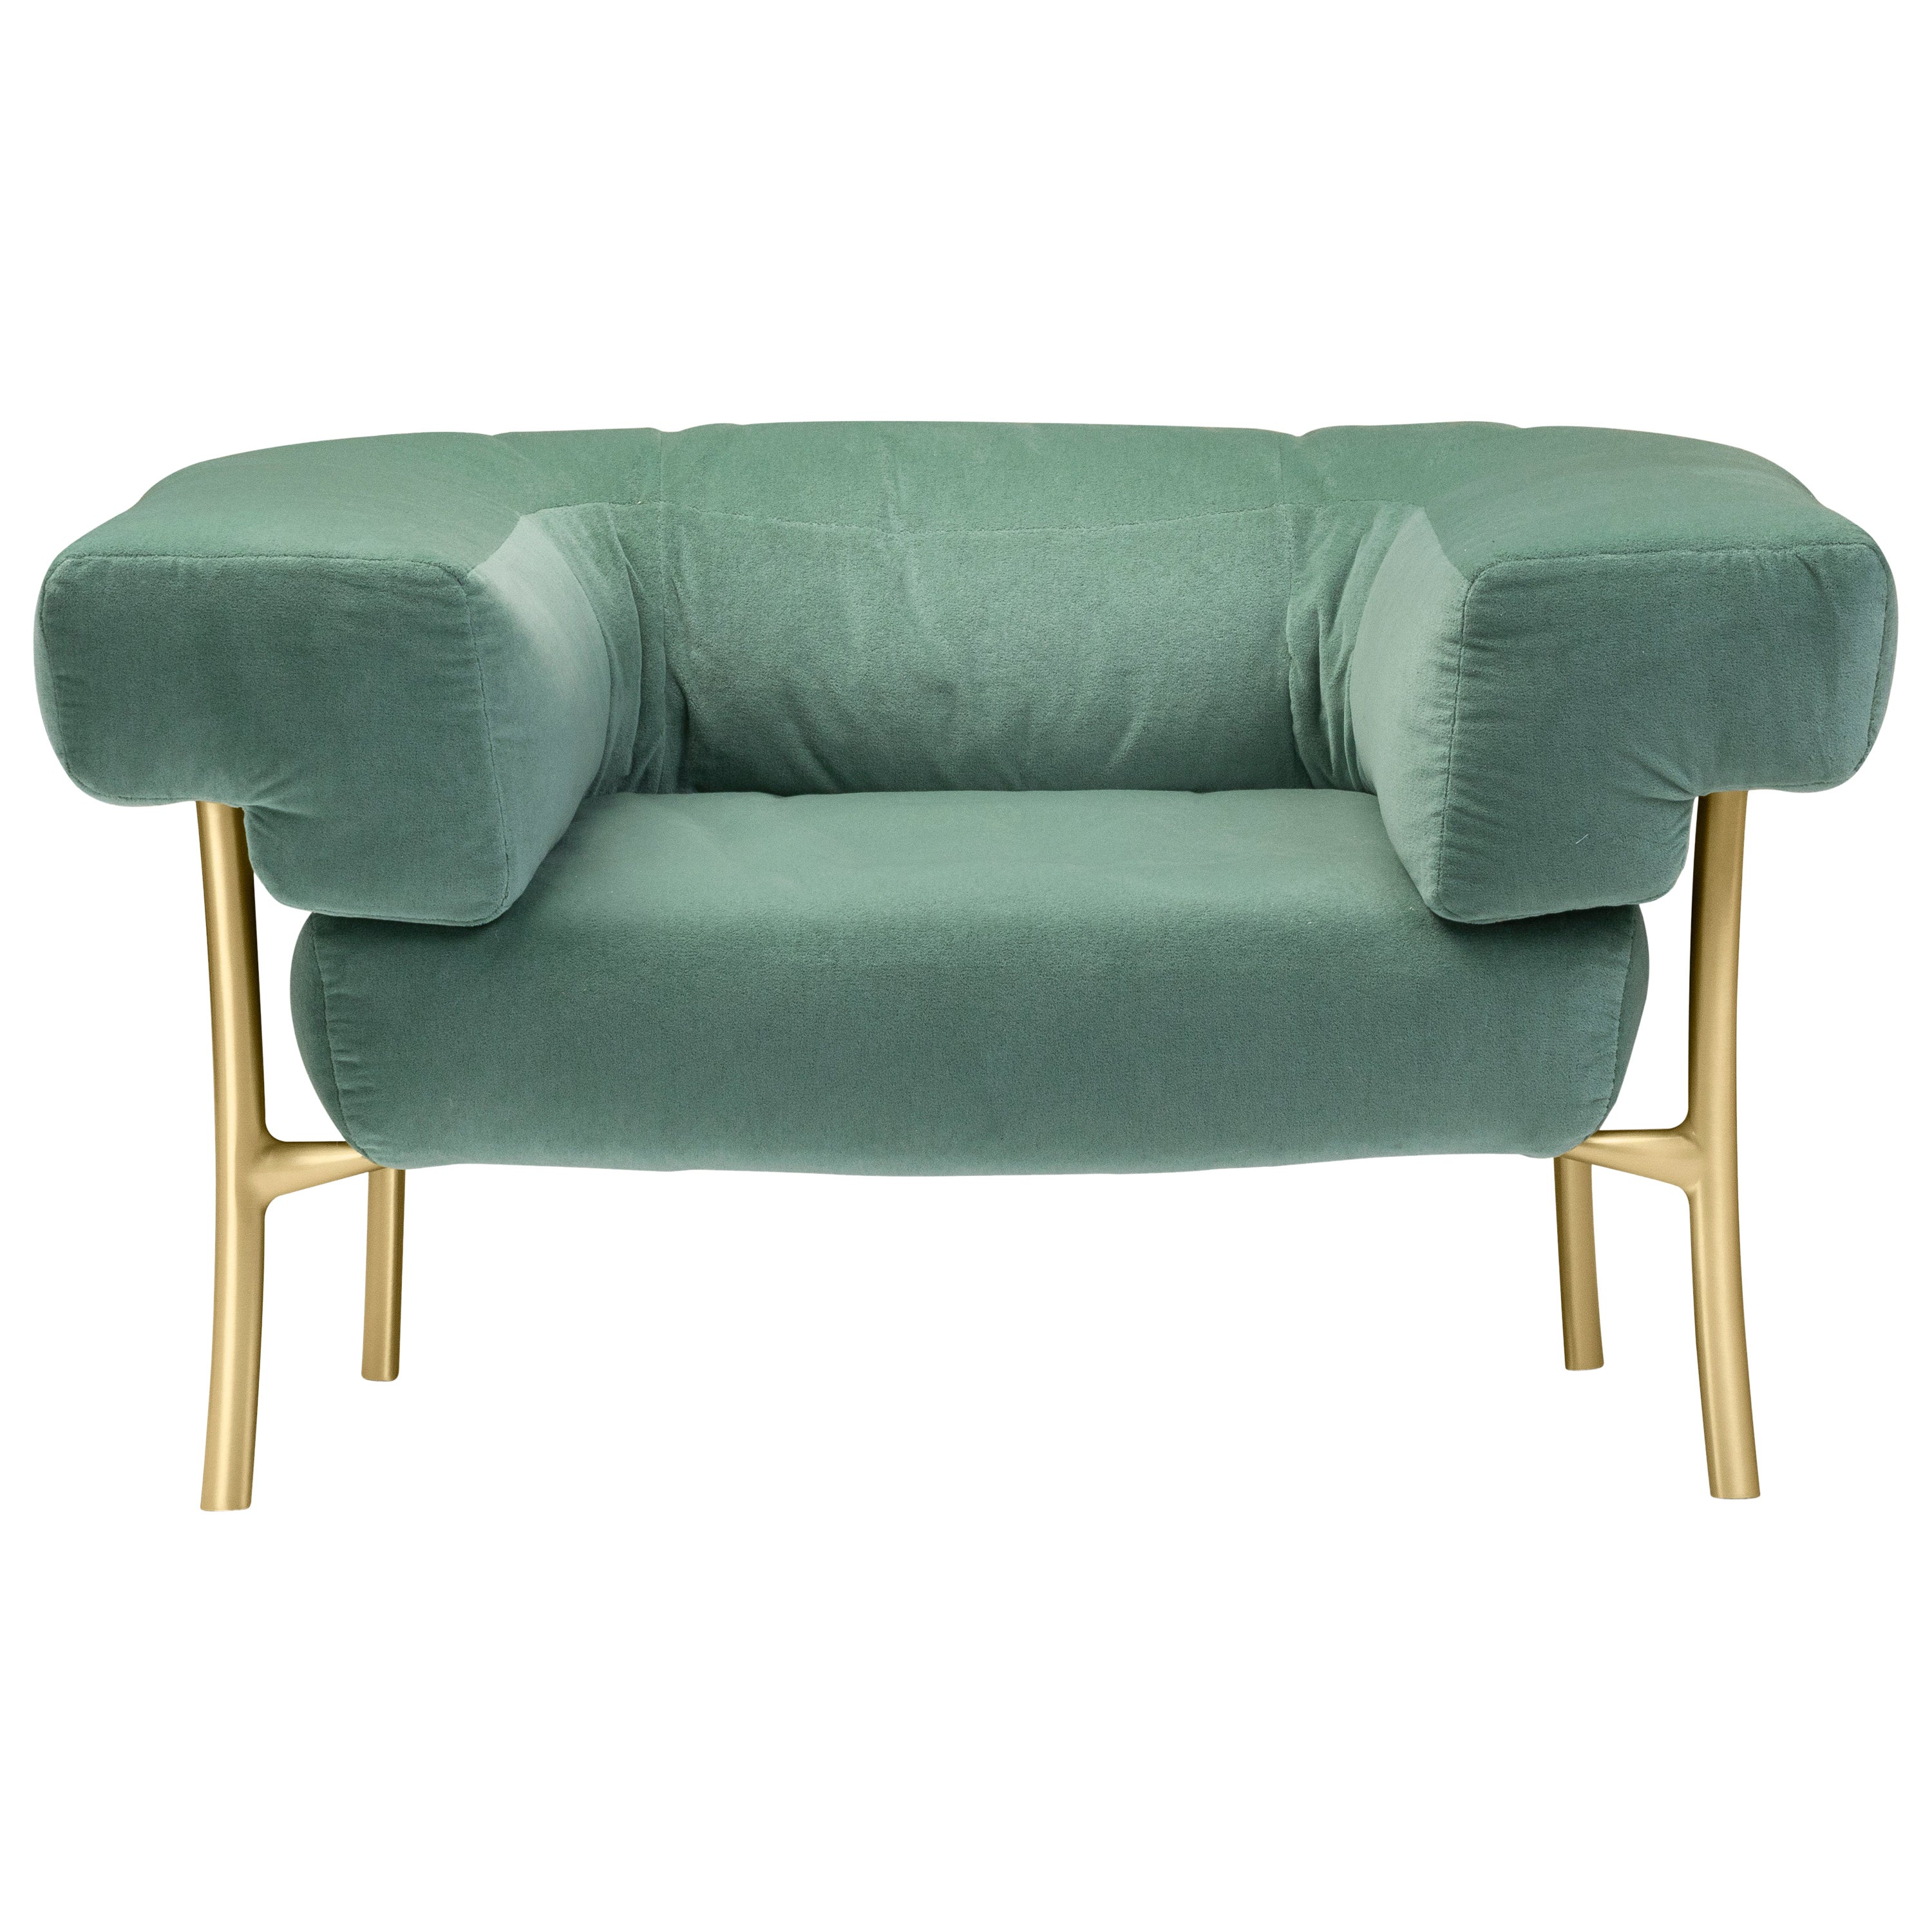 Ghidini 1961 Katana Lounge Chair in Fabric and Satin Brass by Paolo Rizzatto